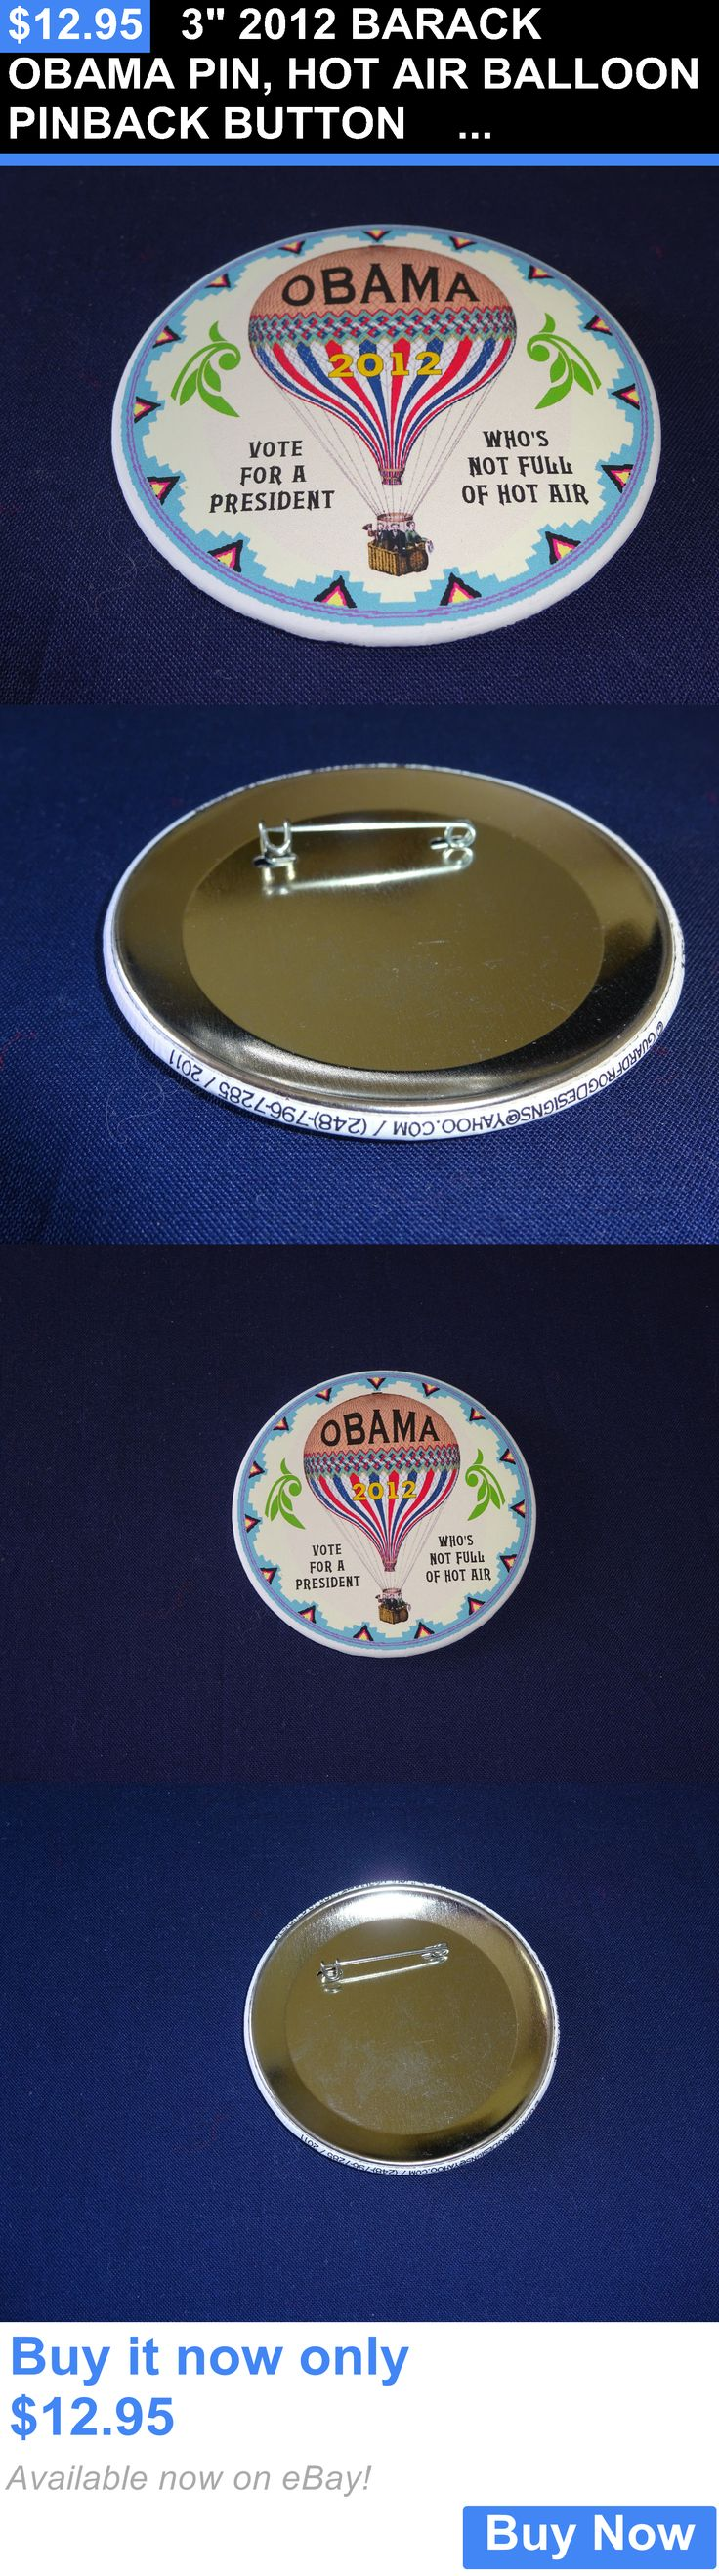 Barack Obama: 3 2012 Barack Obama Pin, Hot Air Balloon Pinback Button E521 BUY IT NOW ONLY: $12.95